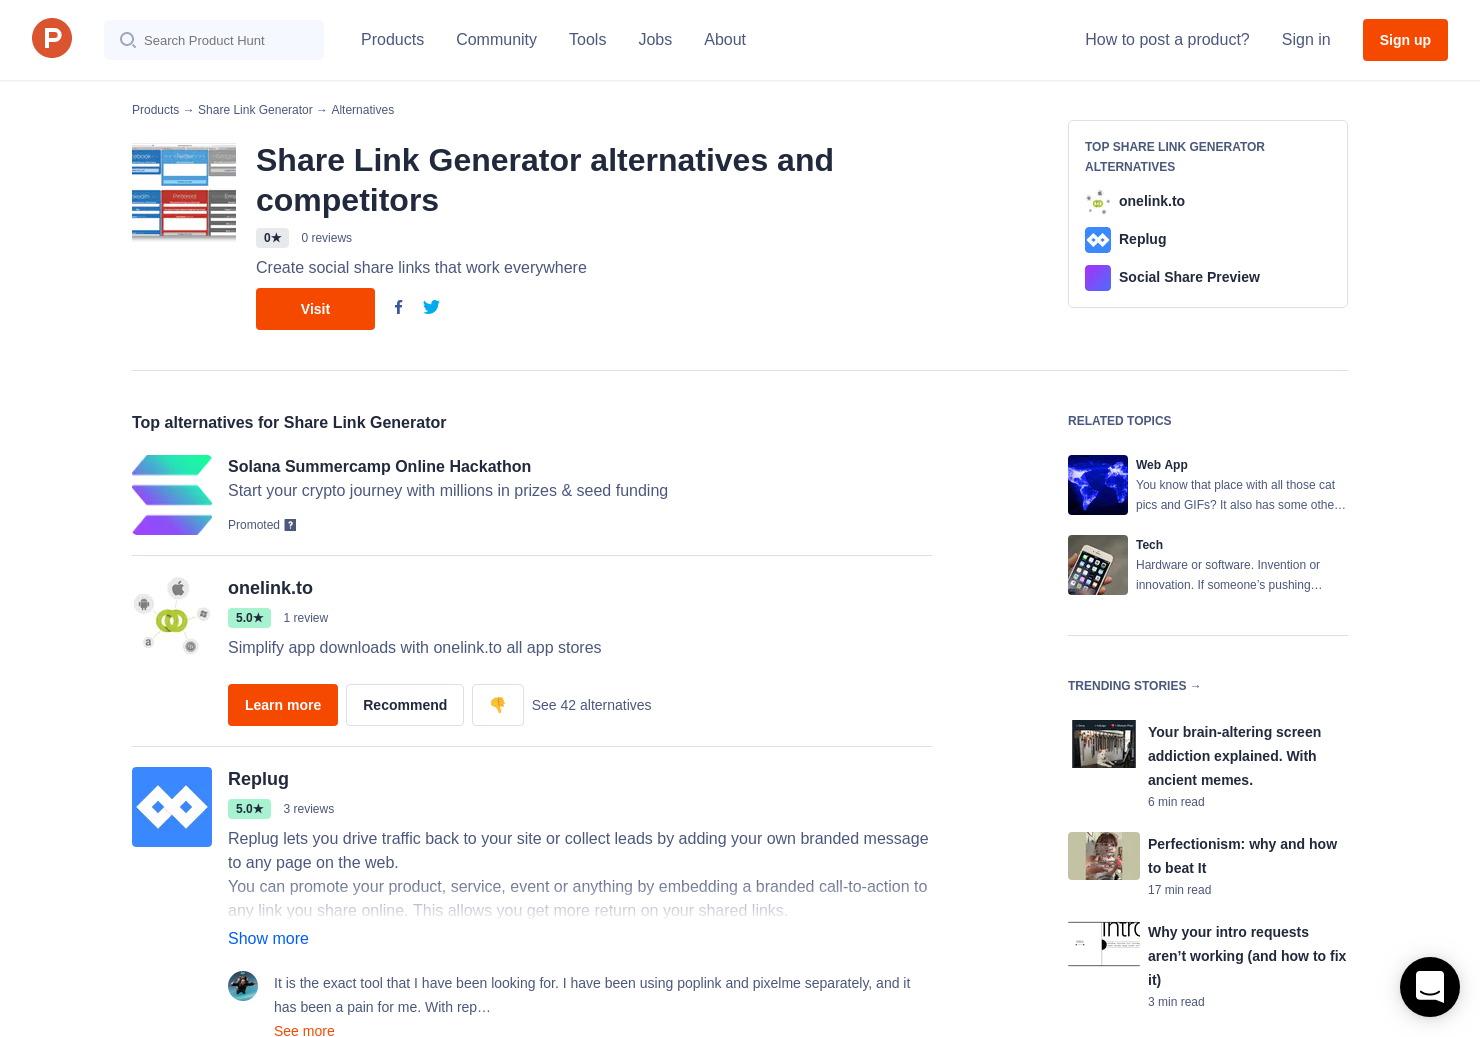 6 Alternatives to Share Link Generator   Product Hunt